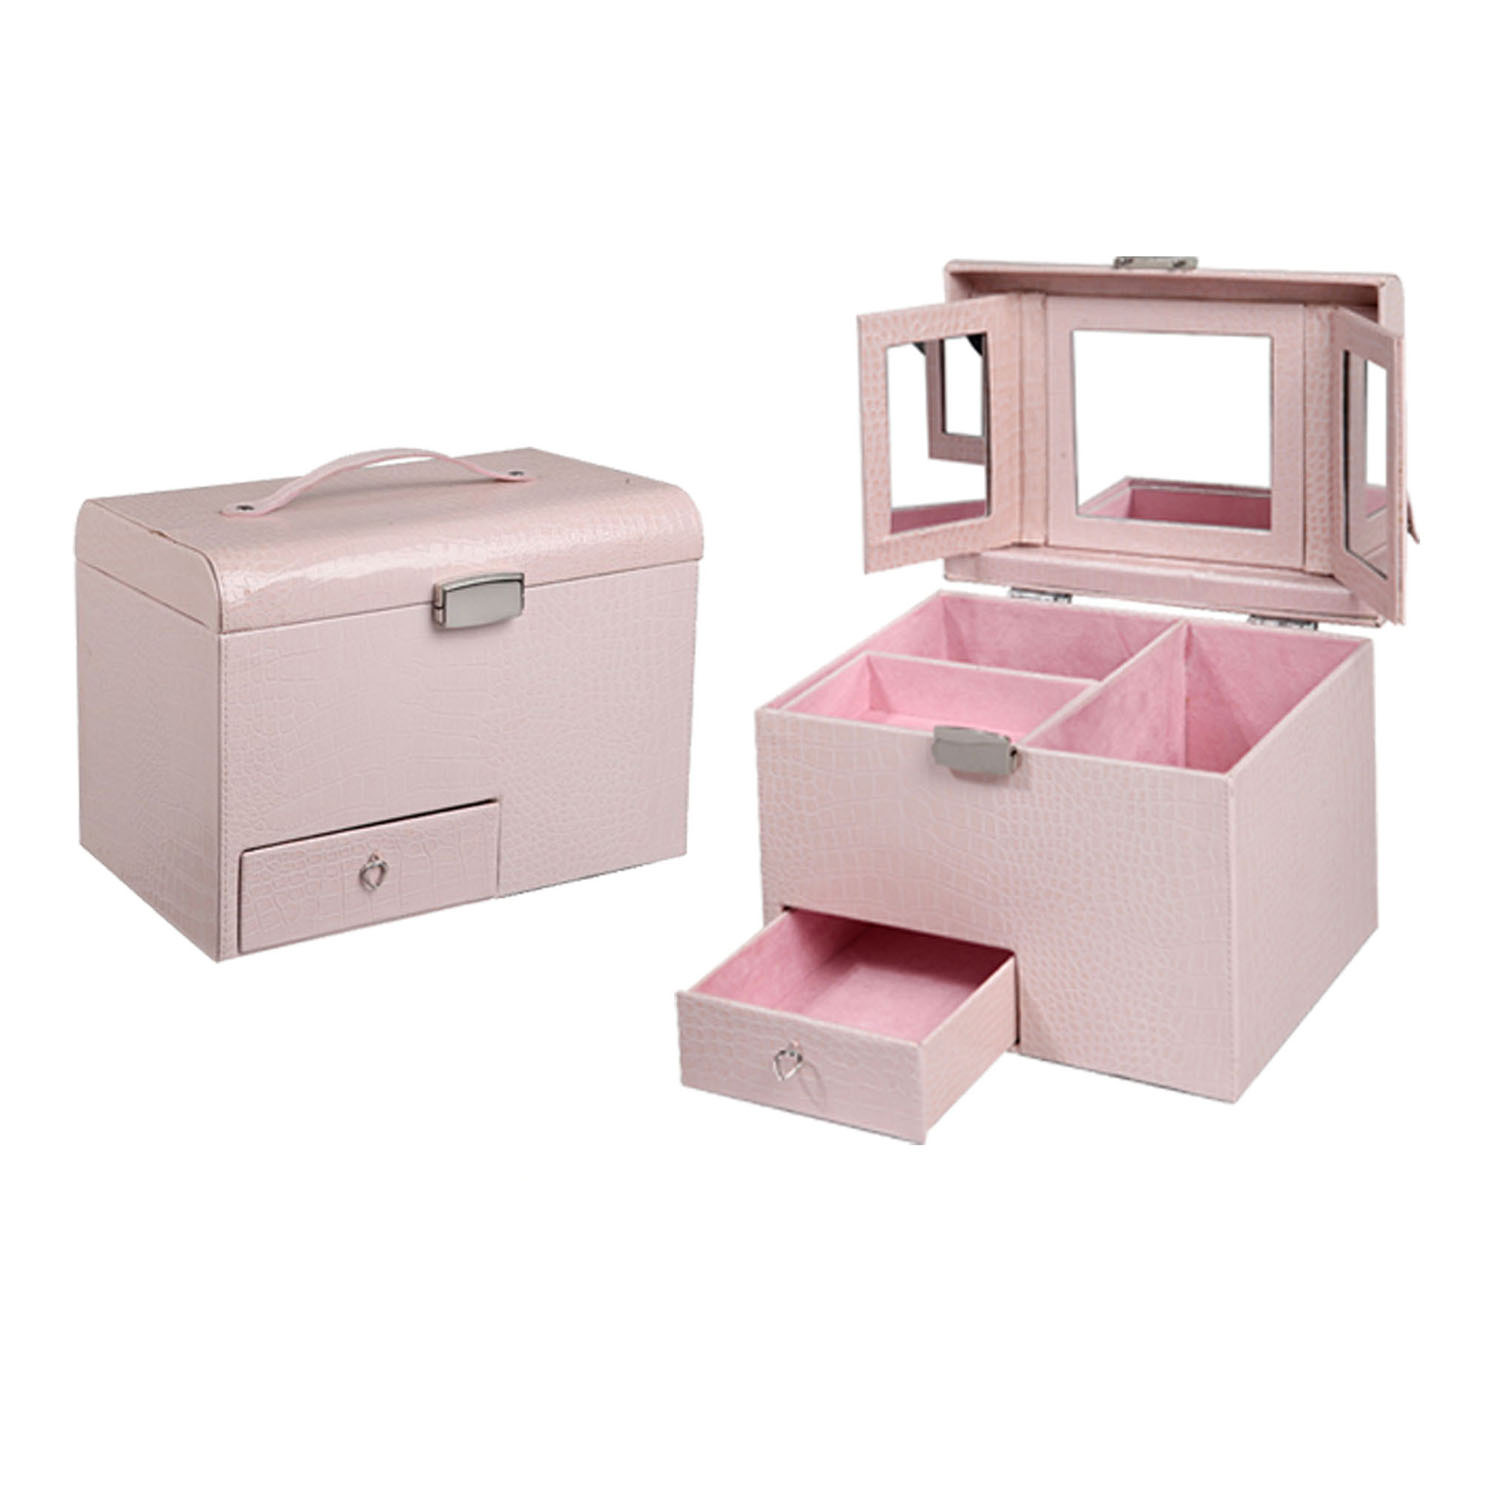 Pink round shaped three transferable box  jewelry box with metal fittings